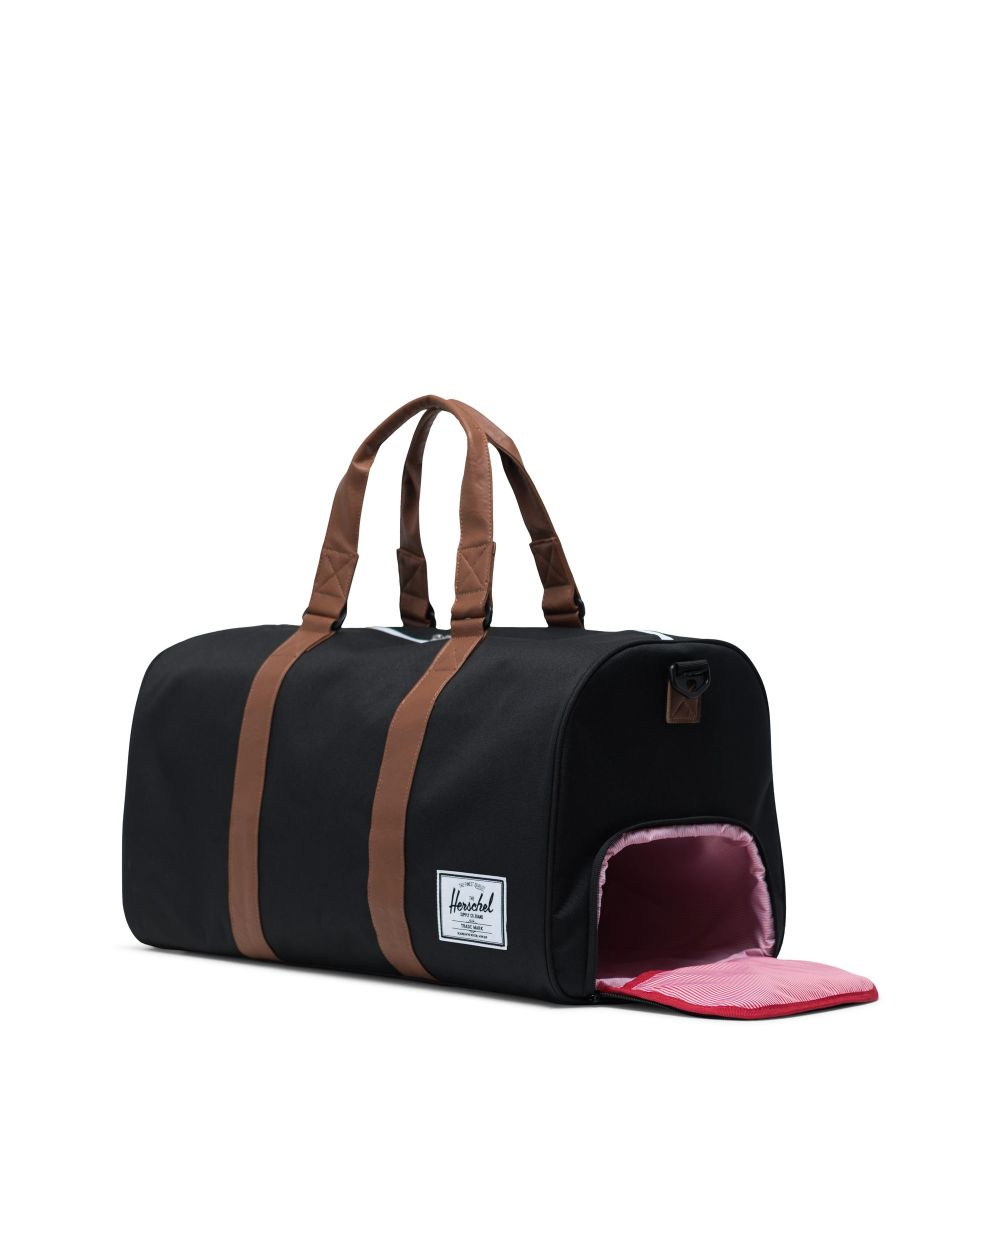 Novel duffle bag in black and tan with shoe compartment